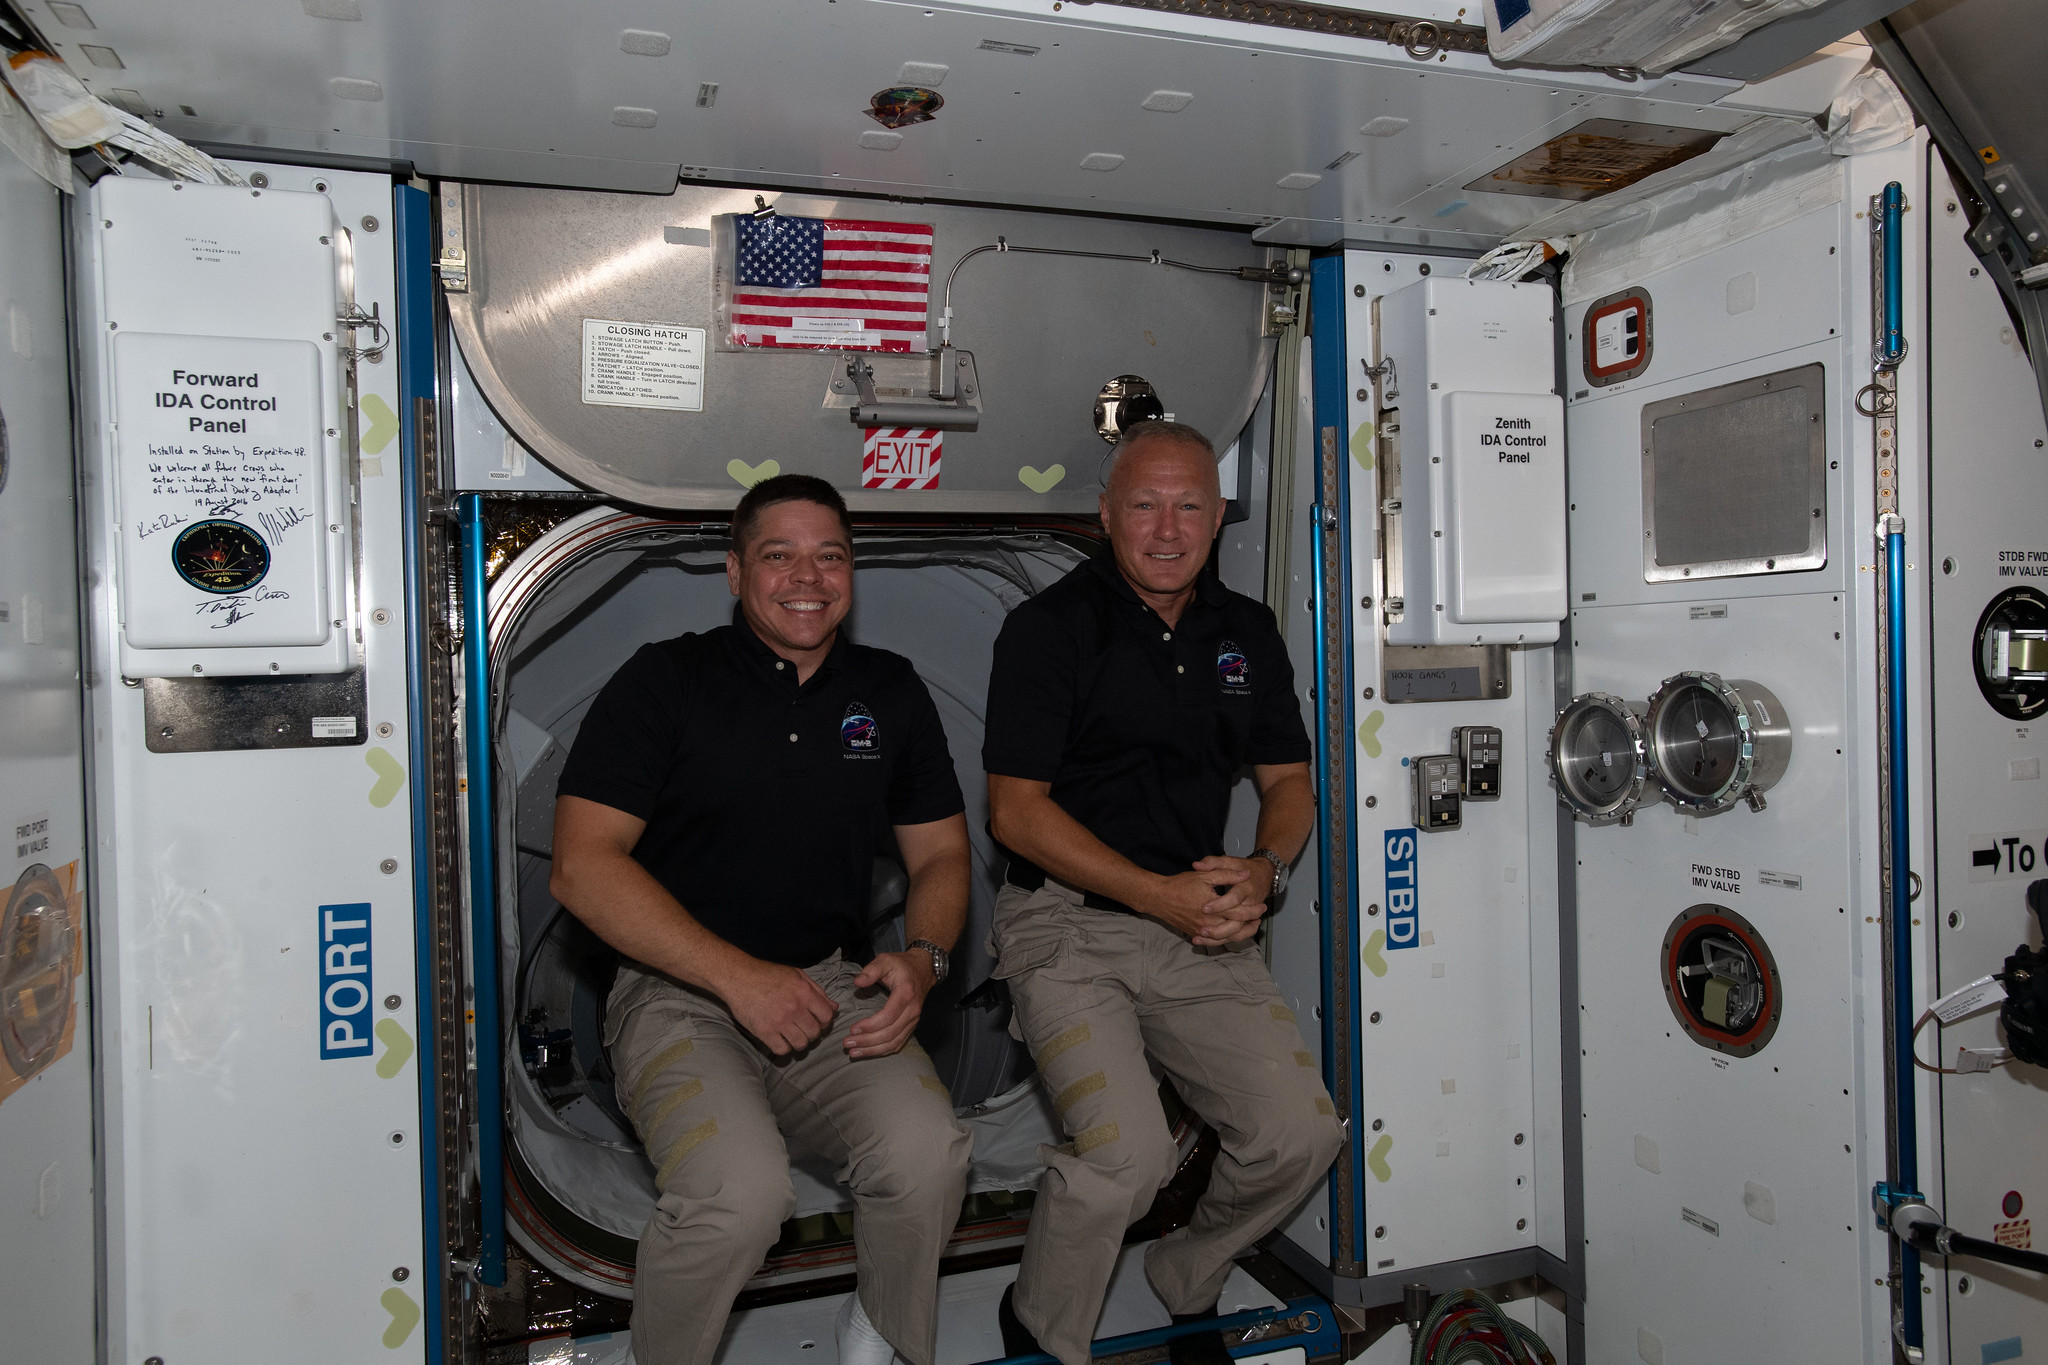 NASA to Provide Coverage of Astronauts' Return from Space Station